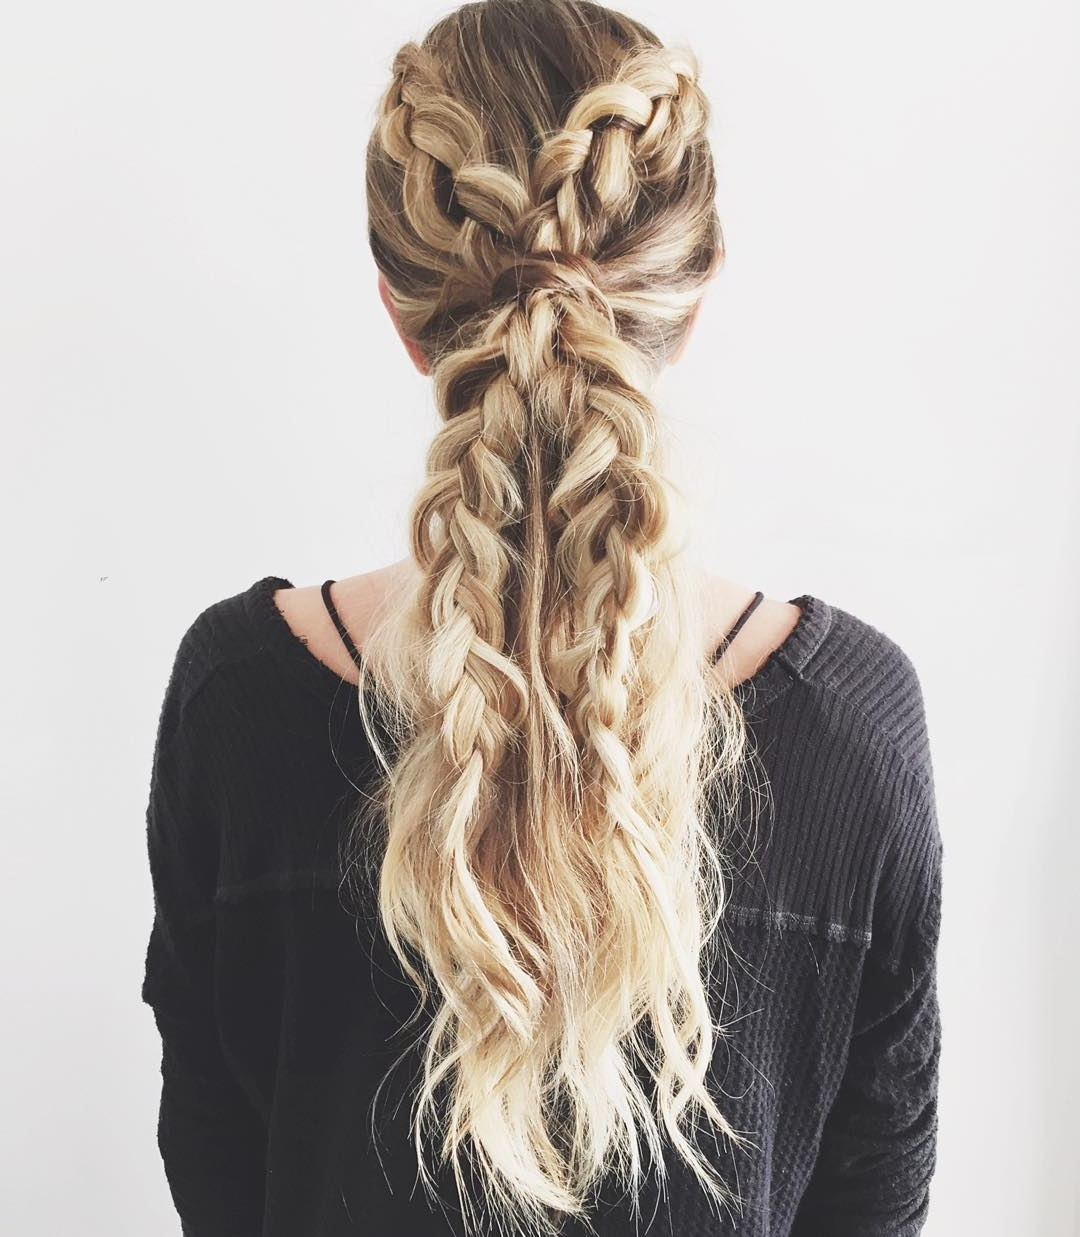 Hairstyle Guru Pertaining To Favorite Messy Ponytail Hairstyles With Side Dutch Braid (View 11 of 20)